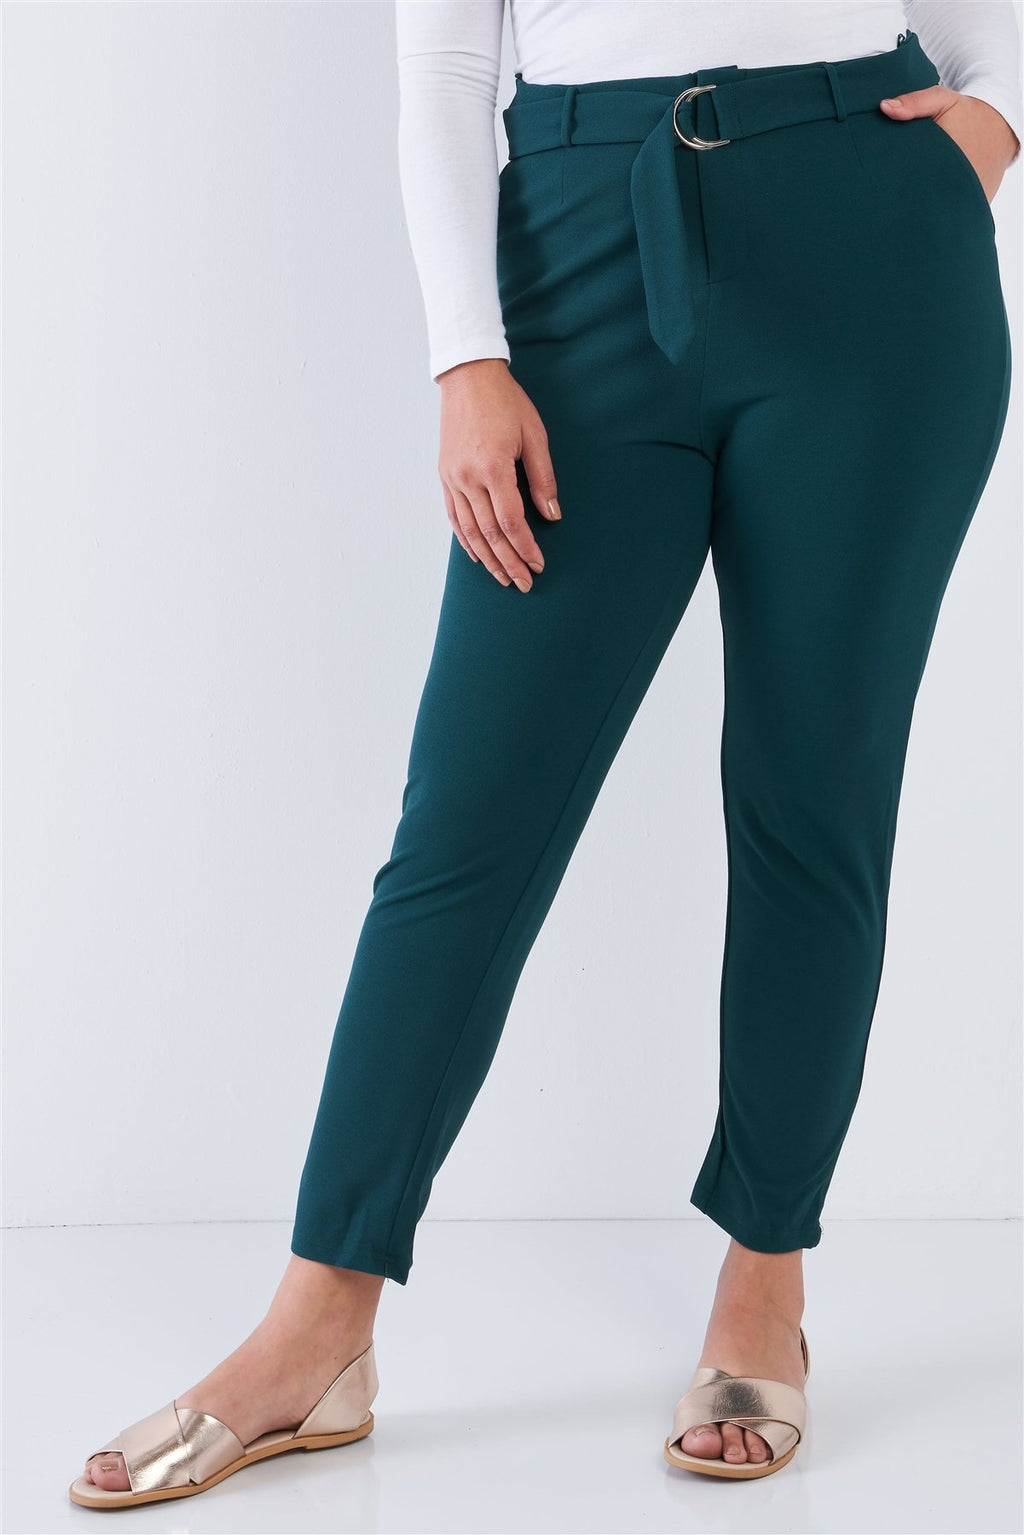 Hunter Green / 1XL Plus Size High Waisted Ankle Length Pants